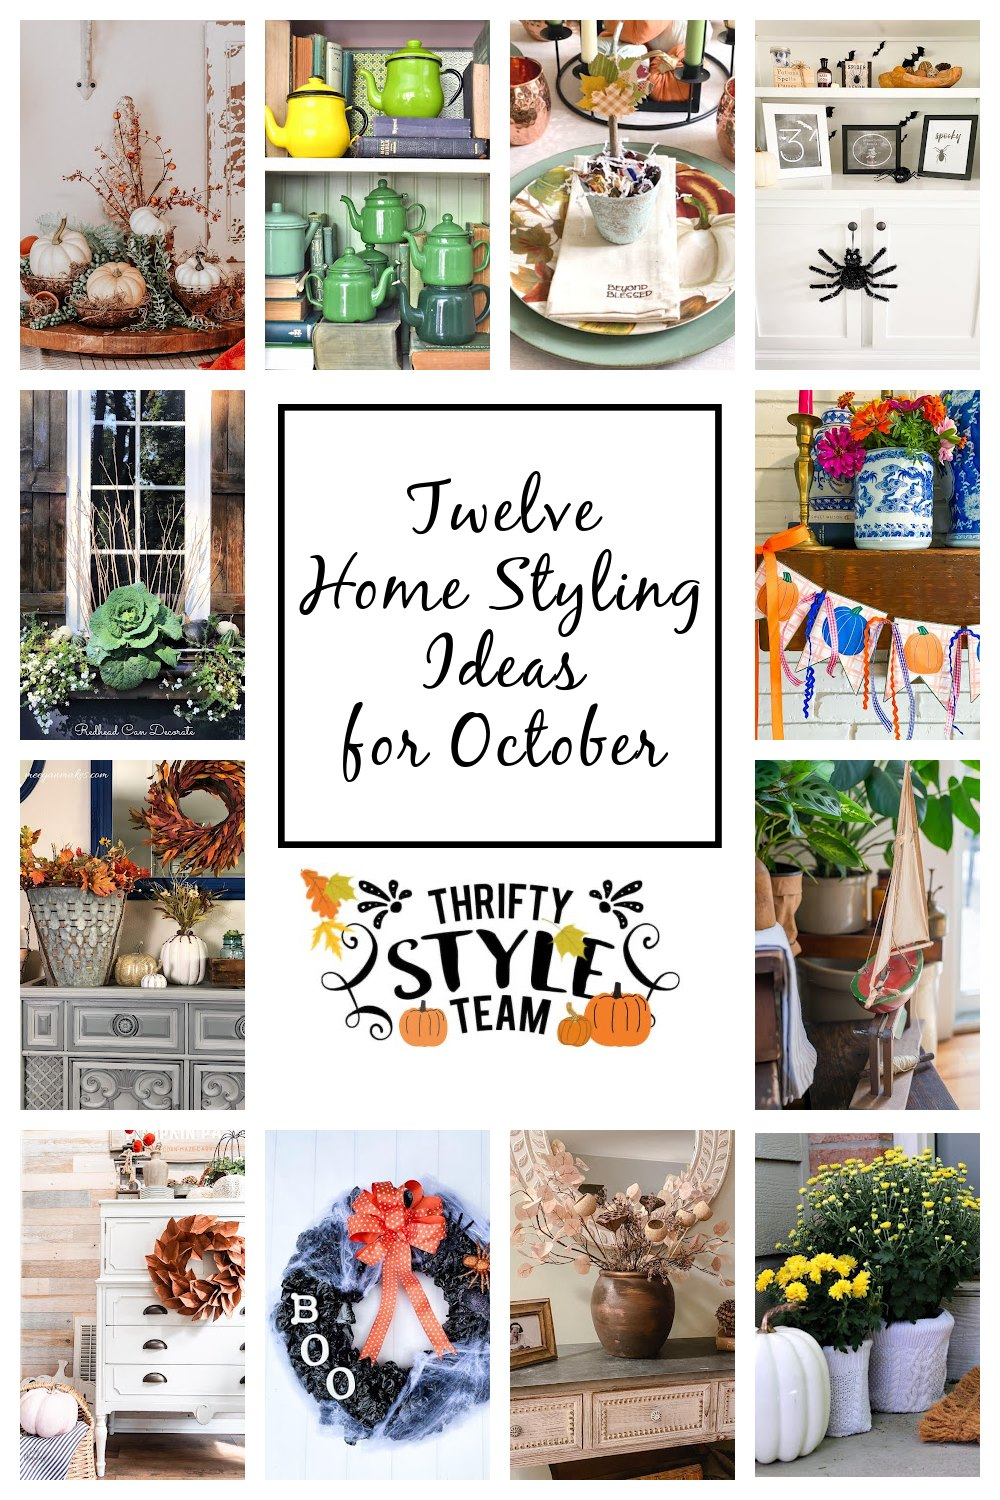 Twelve Home Styling Ideas for October